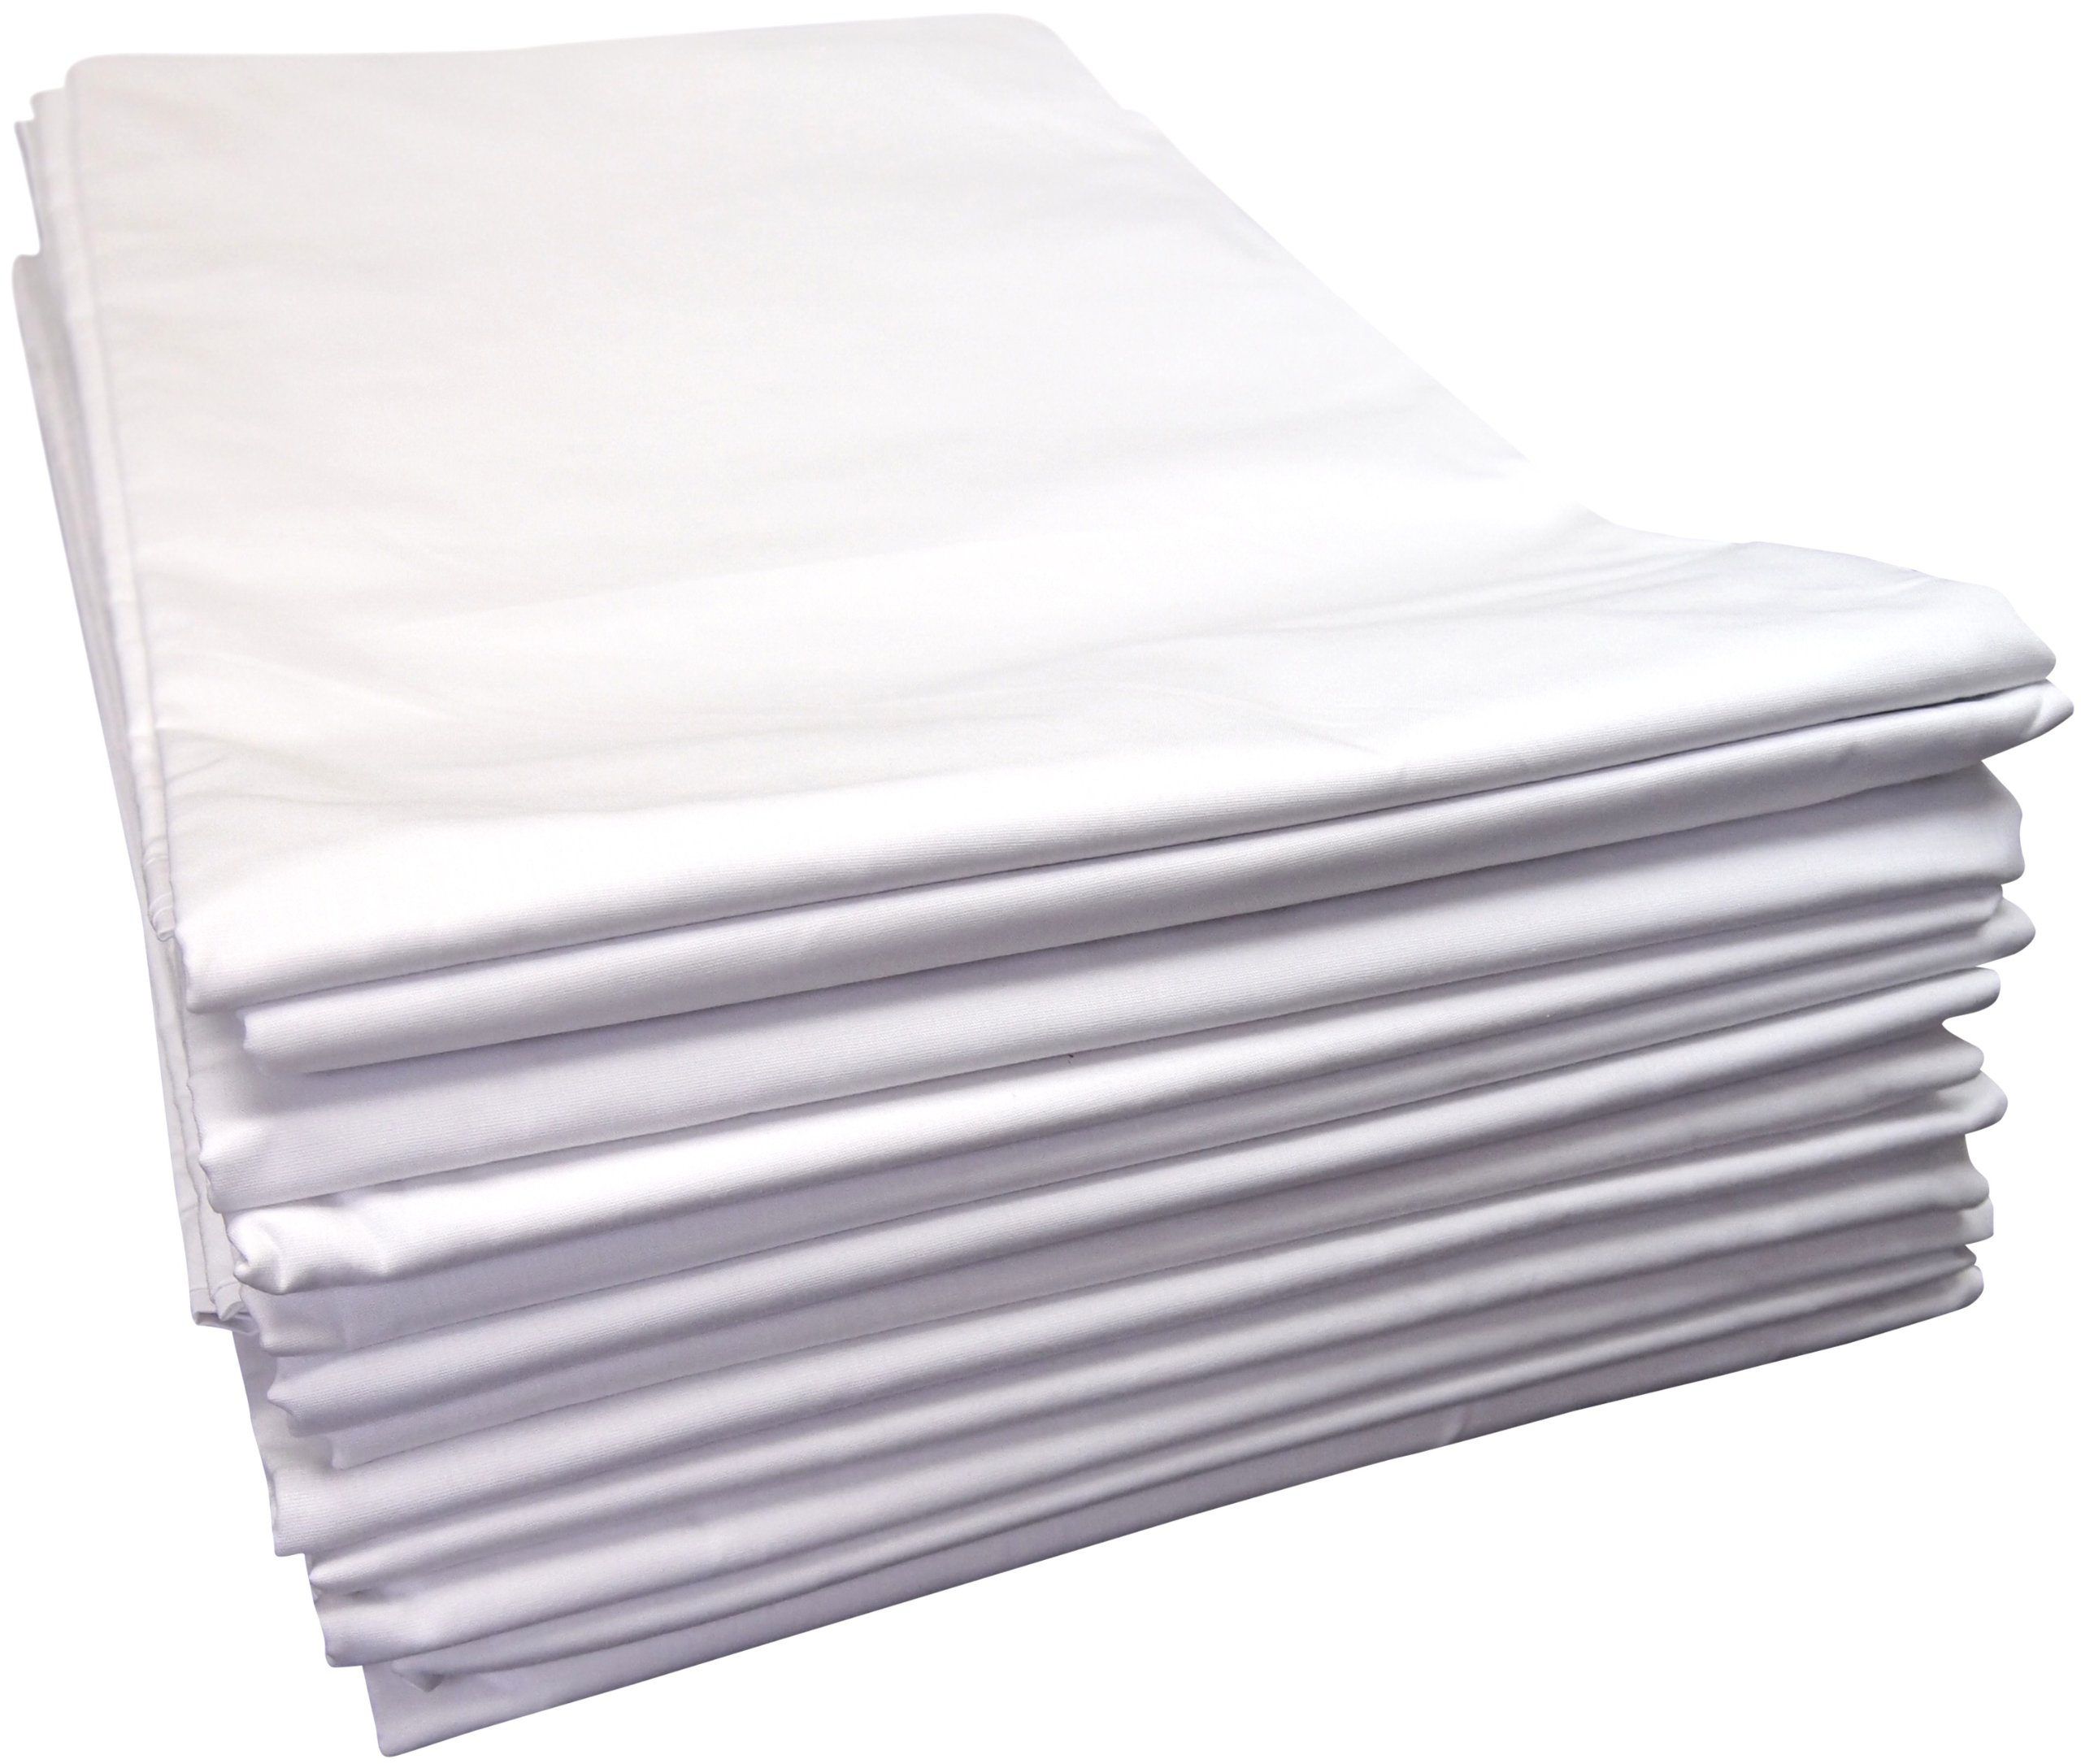 Linteum Textile TWIN FLAT SHEETS 180 Thread Count 66x104 in. 12-Pack White